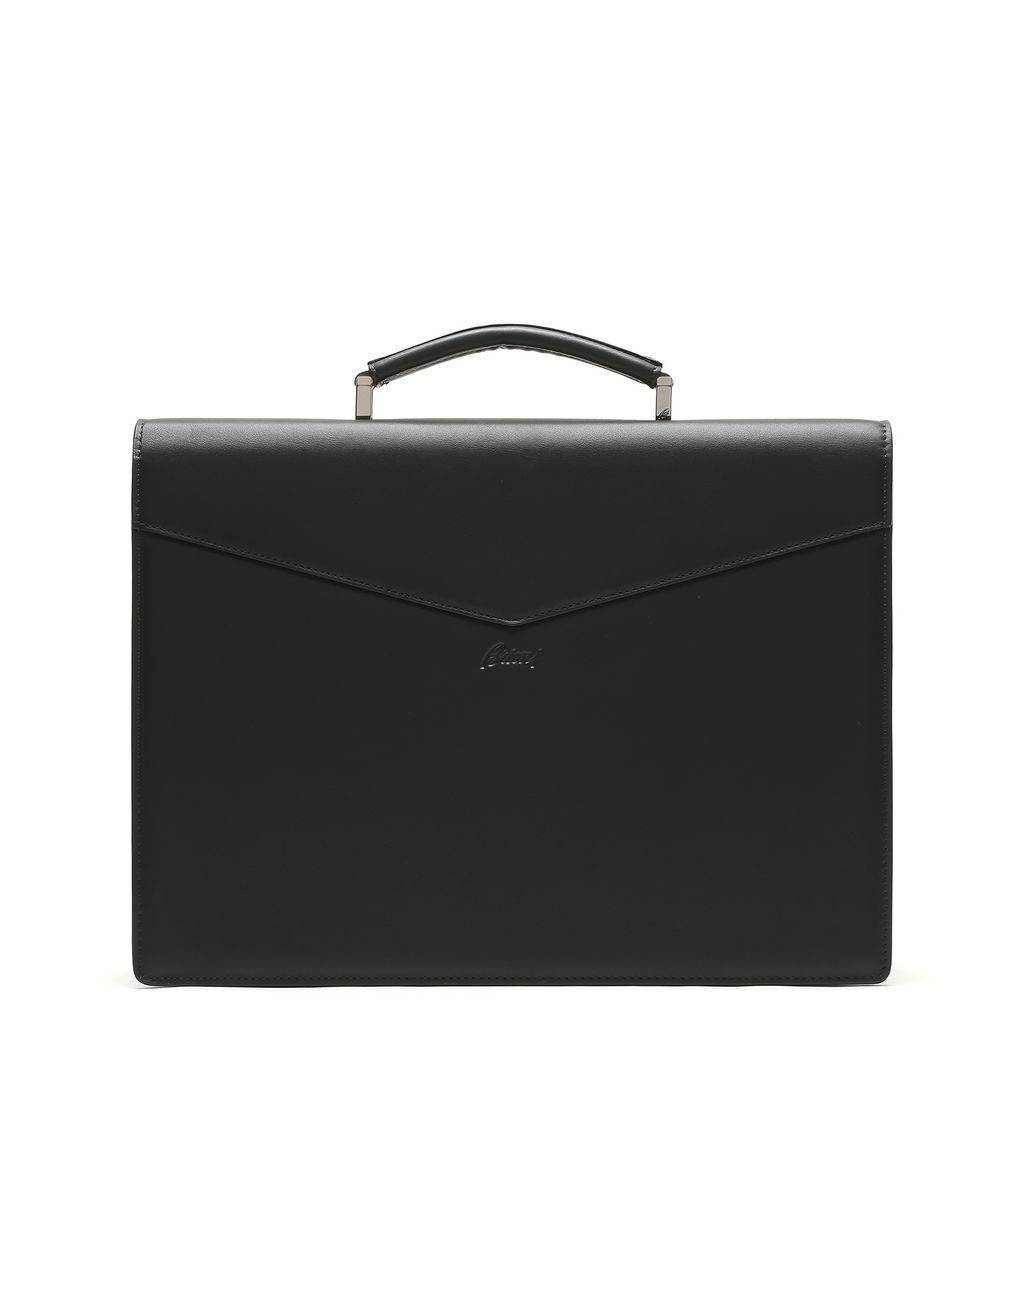 BRIONI Briefcase Nera in Pelle di Vitello Business Uomo d